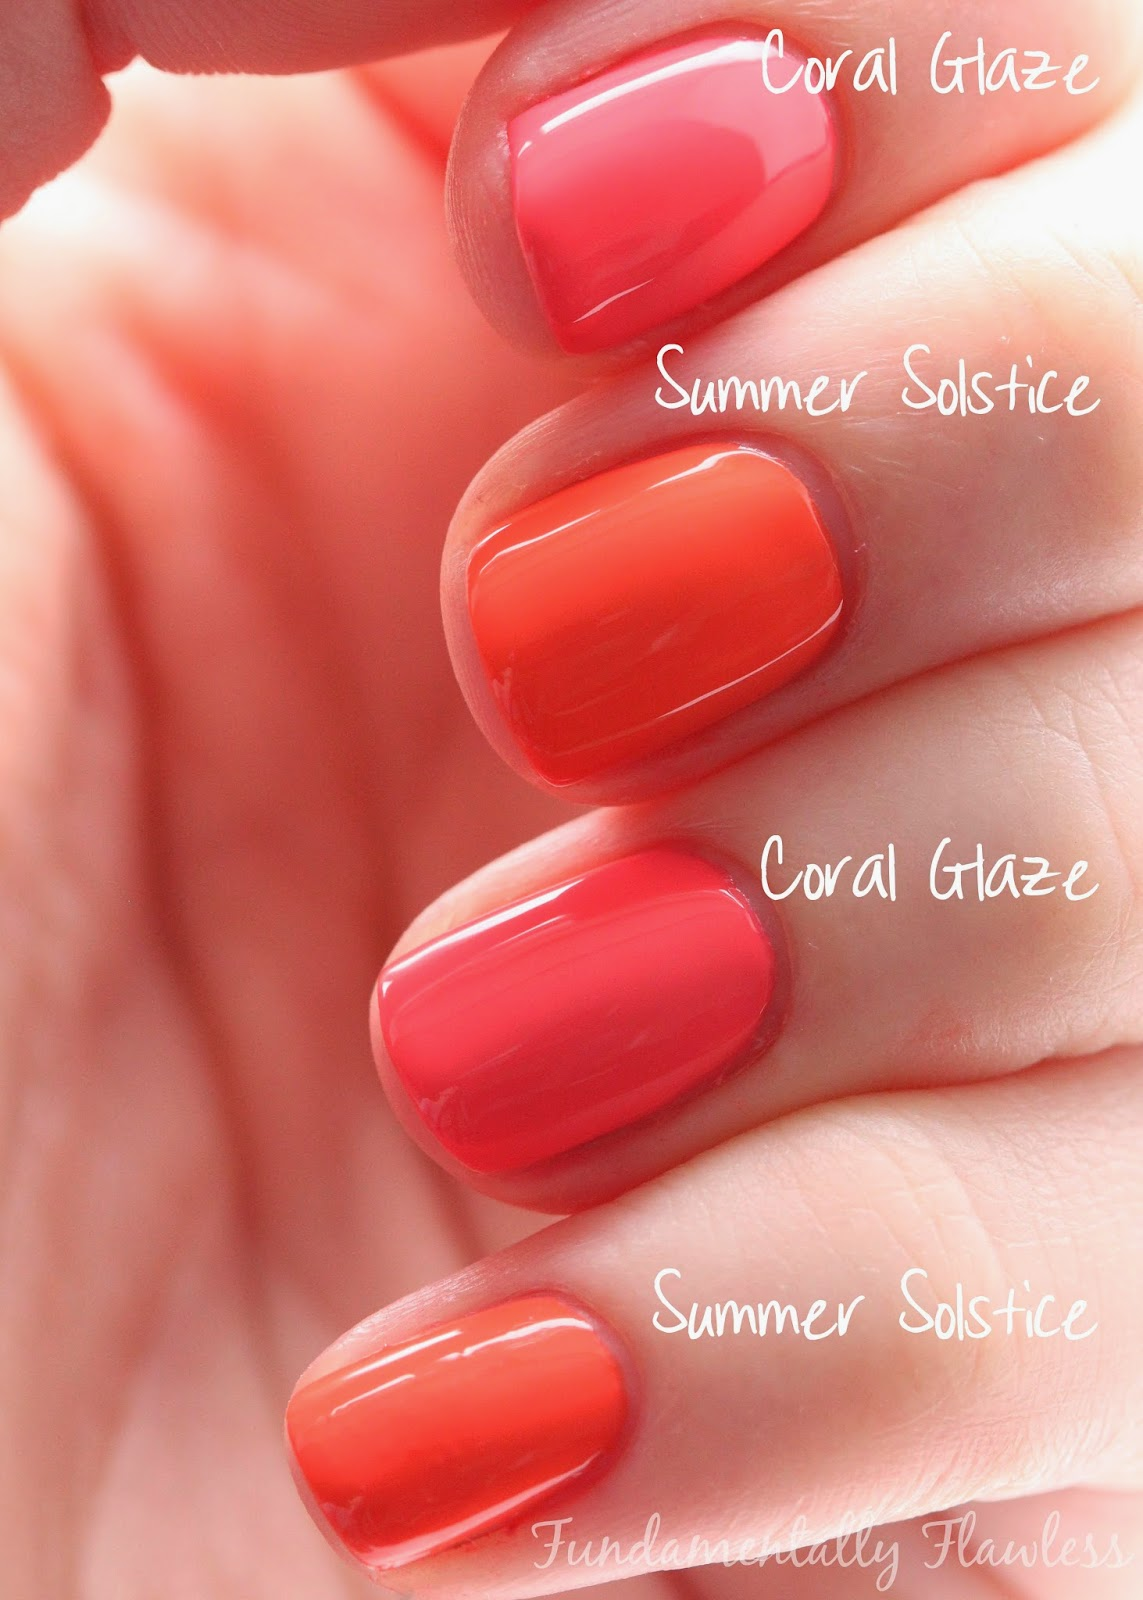 Models Own Hypergel Summer Solstice vs Coral Glaze swatch